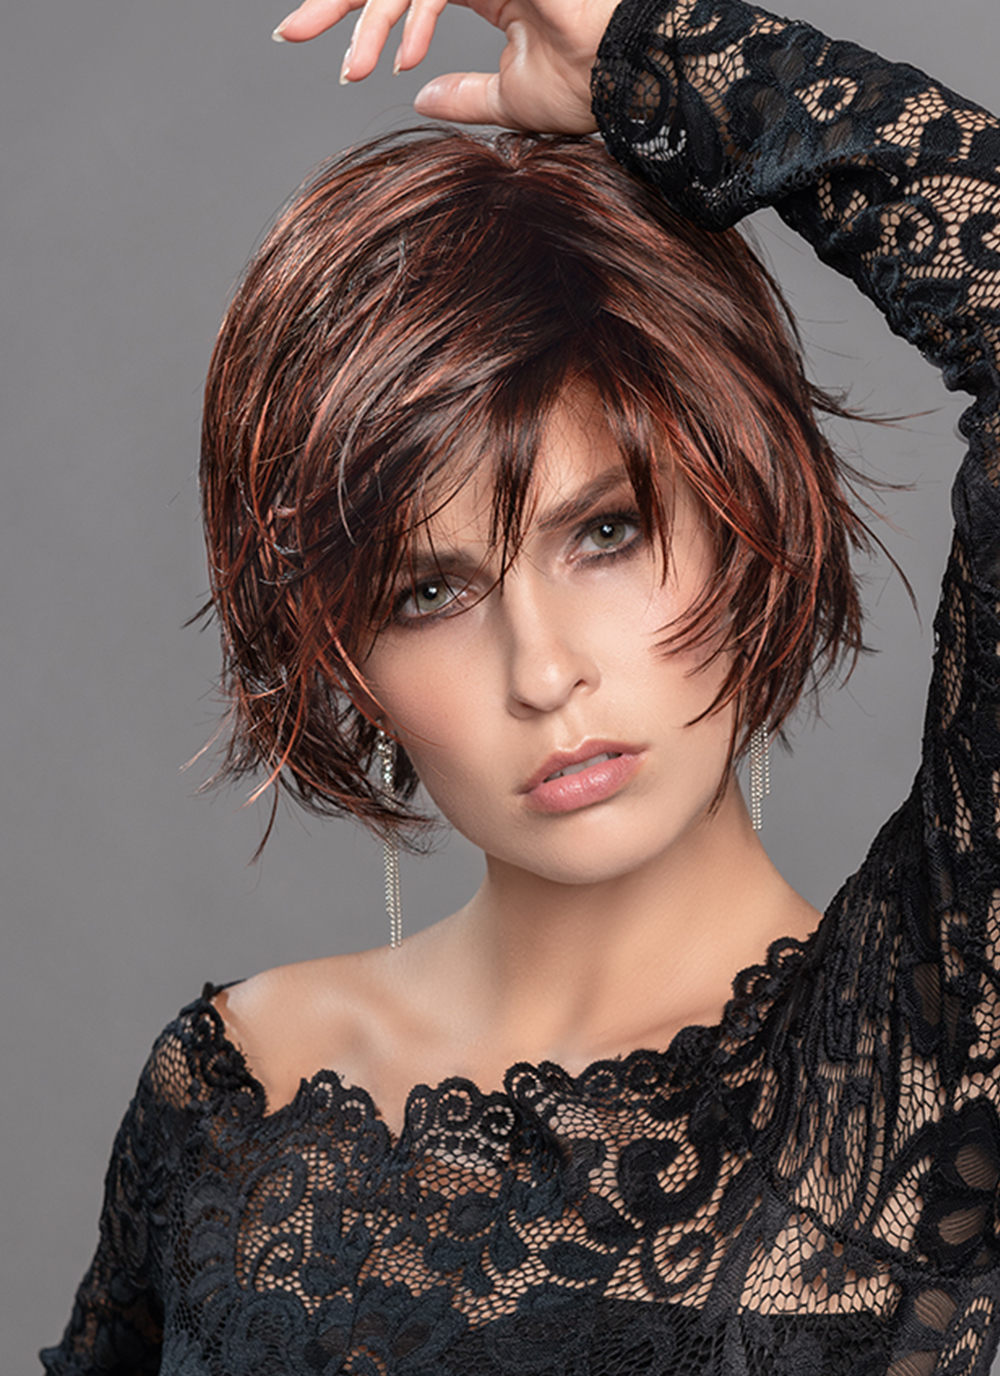 The Echo has a monofilament parting, 100% hand-knotted, for a natural growth appearance where the hair is parting